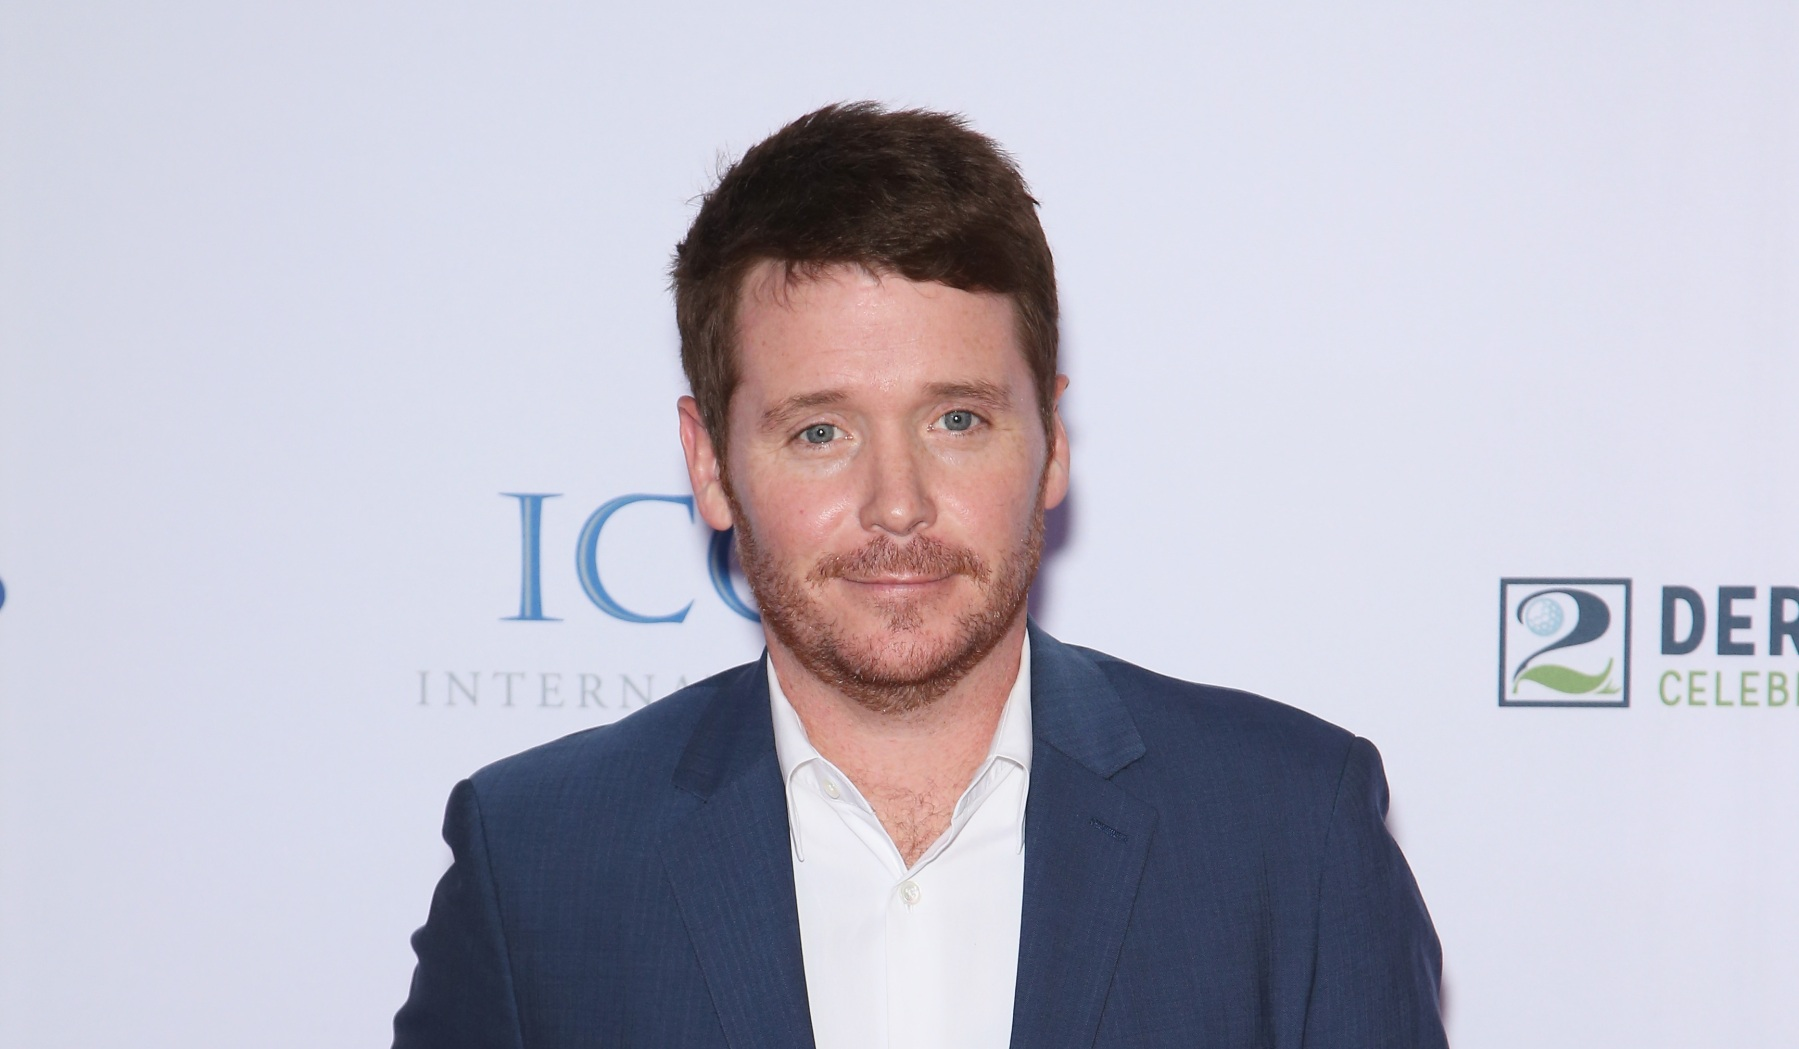 Actor Kevin Connolly attends the Derek Jeter Celebrity Invitational gala at the Aria Resort & Casino on April 21, 2016 in Las Vegas, Nevada.  (Photo by Gabe Ginsberg/Getty Images)